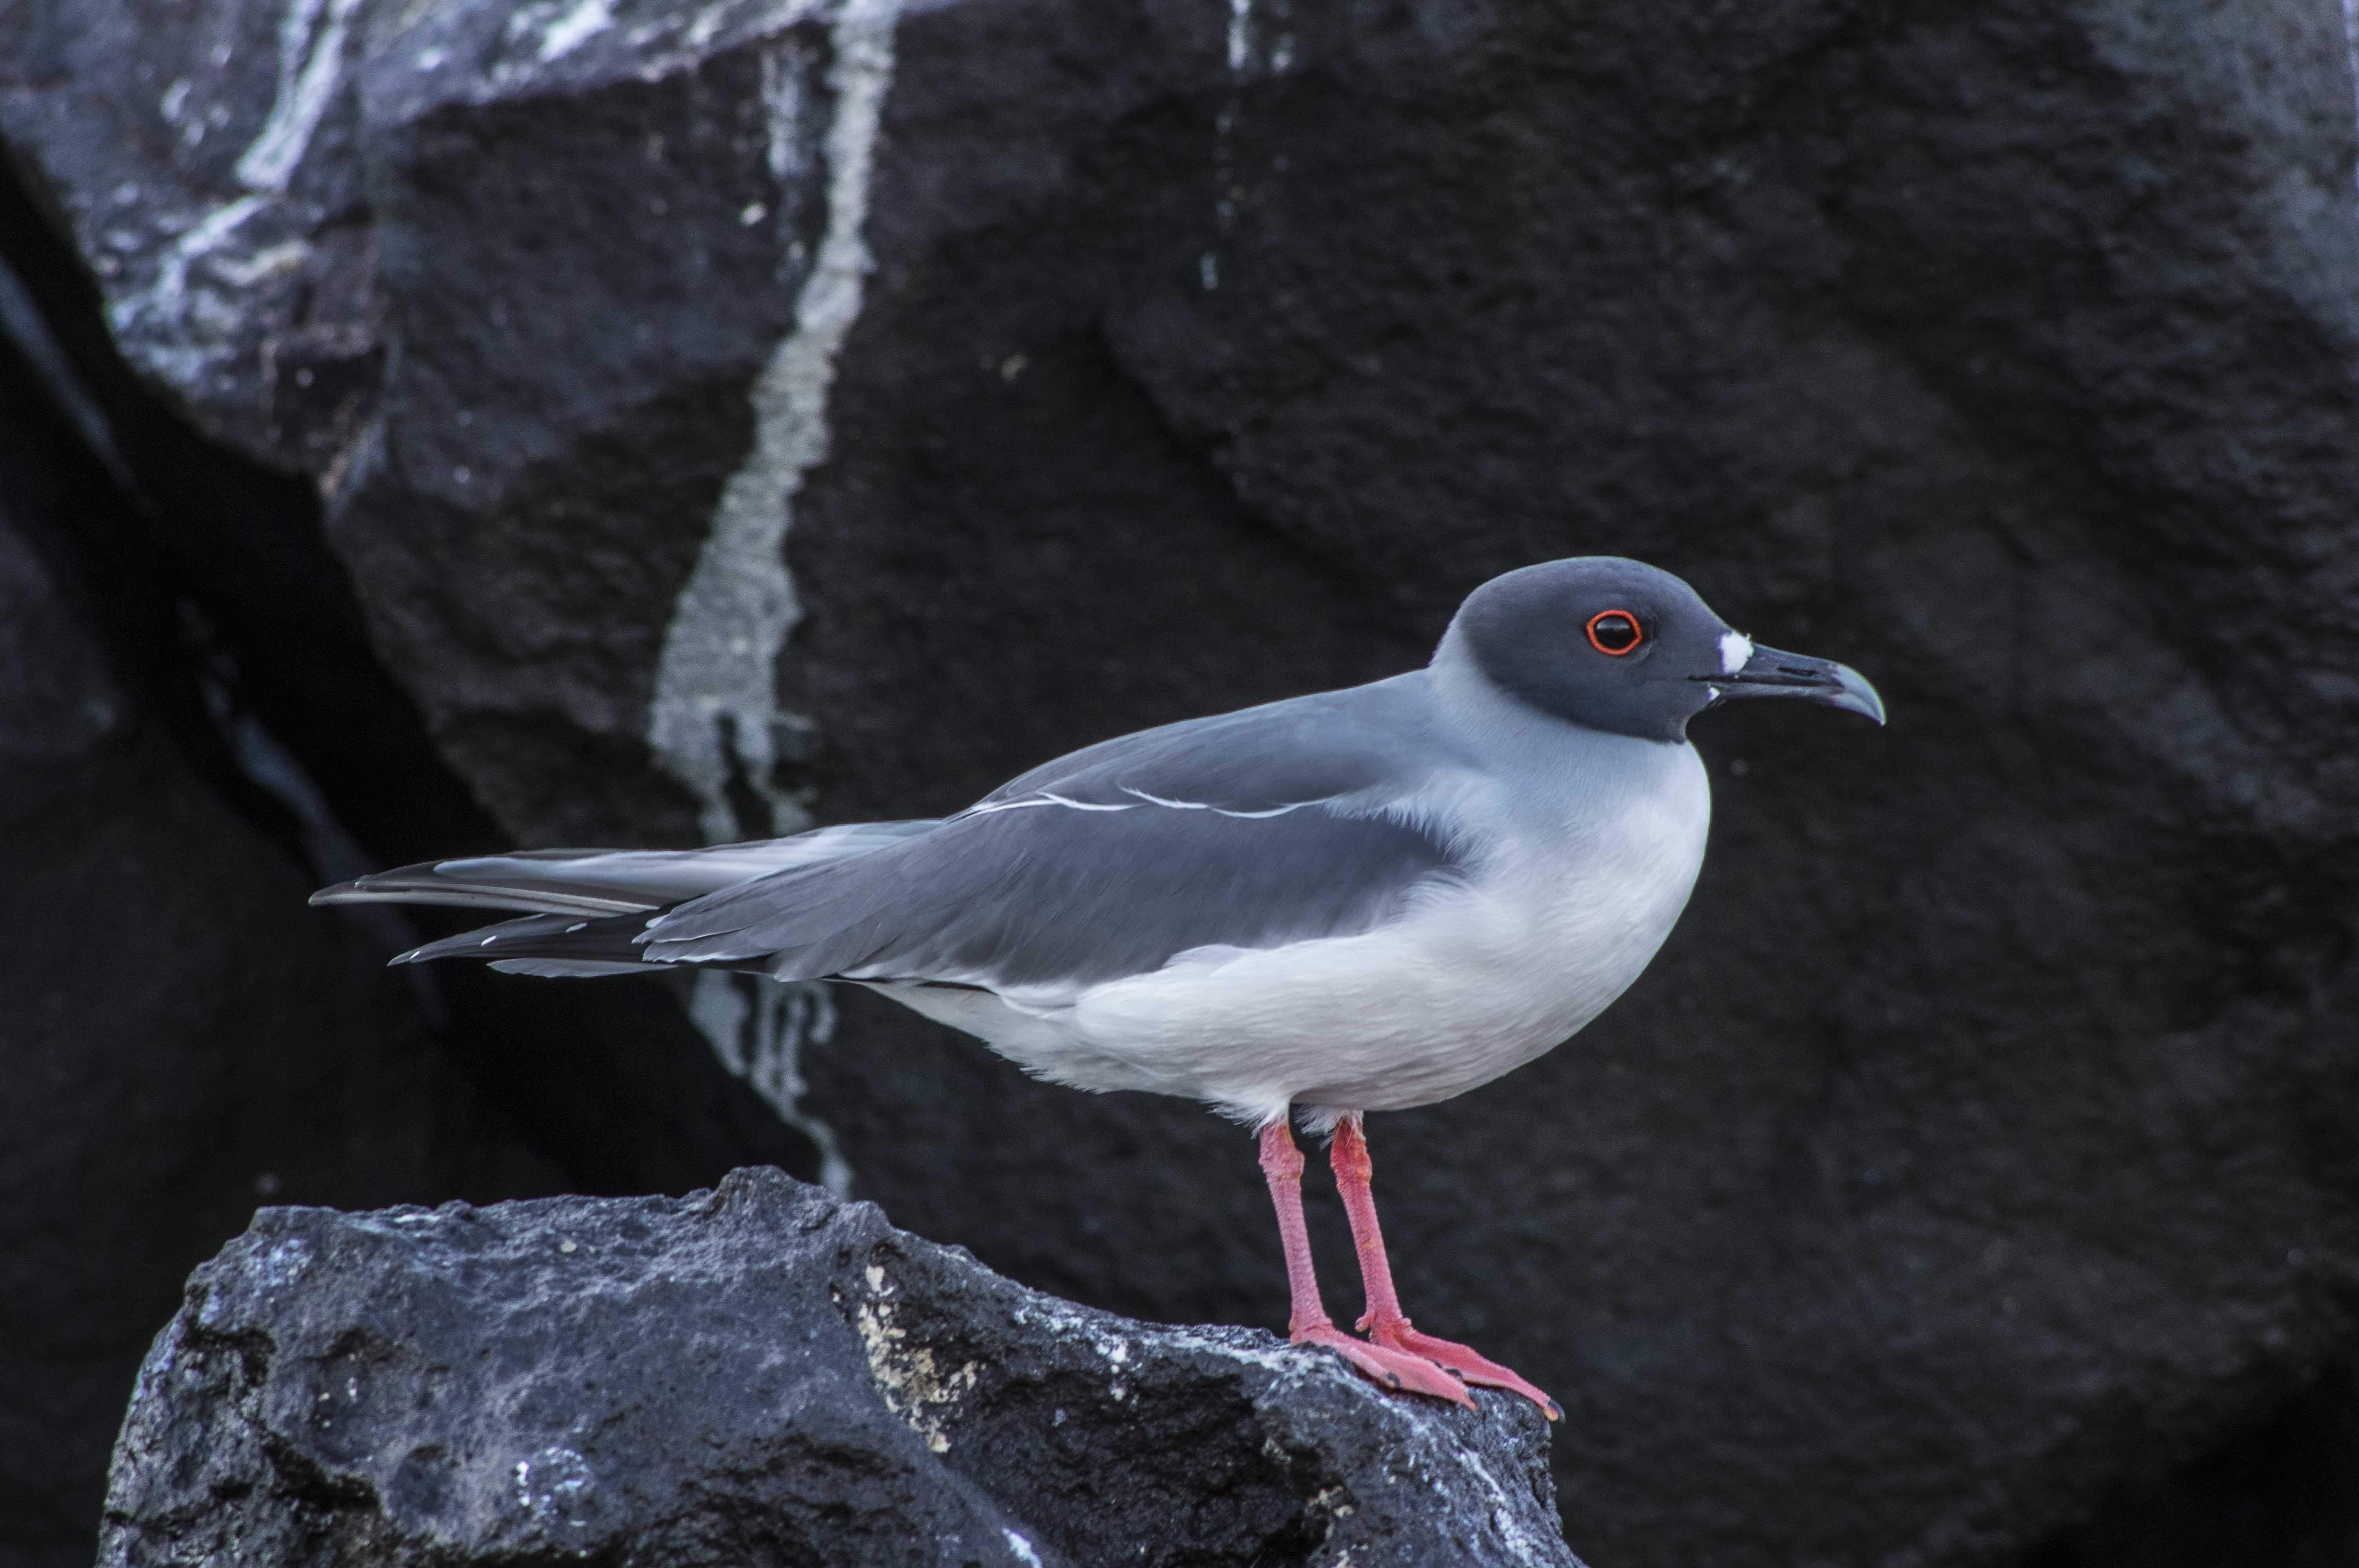 Swallow-tailed gull on a rock by the ocean in Galapagos, Ecuador - Photo by George Peterson